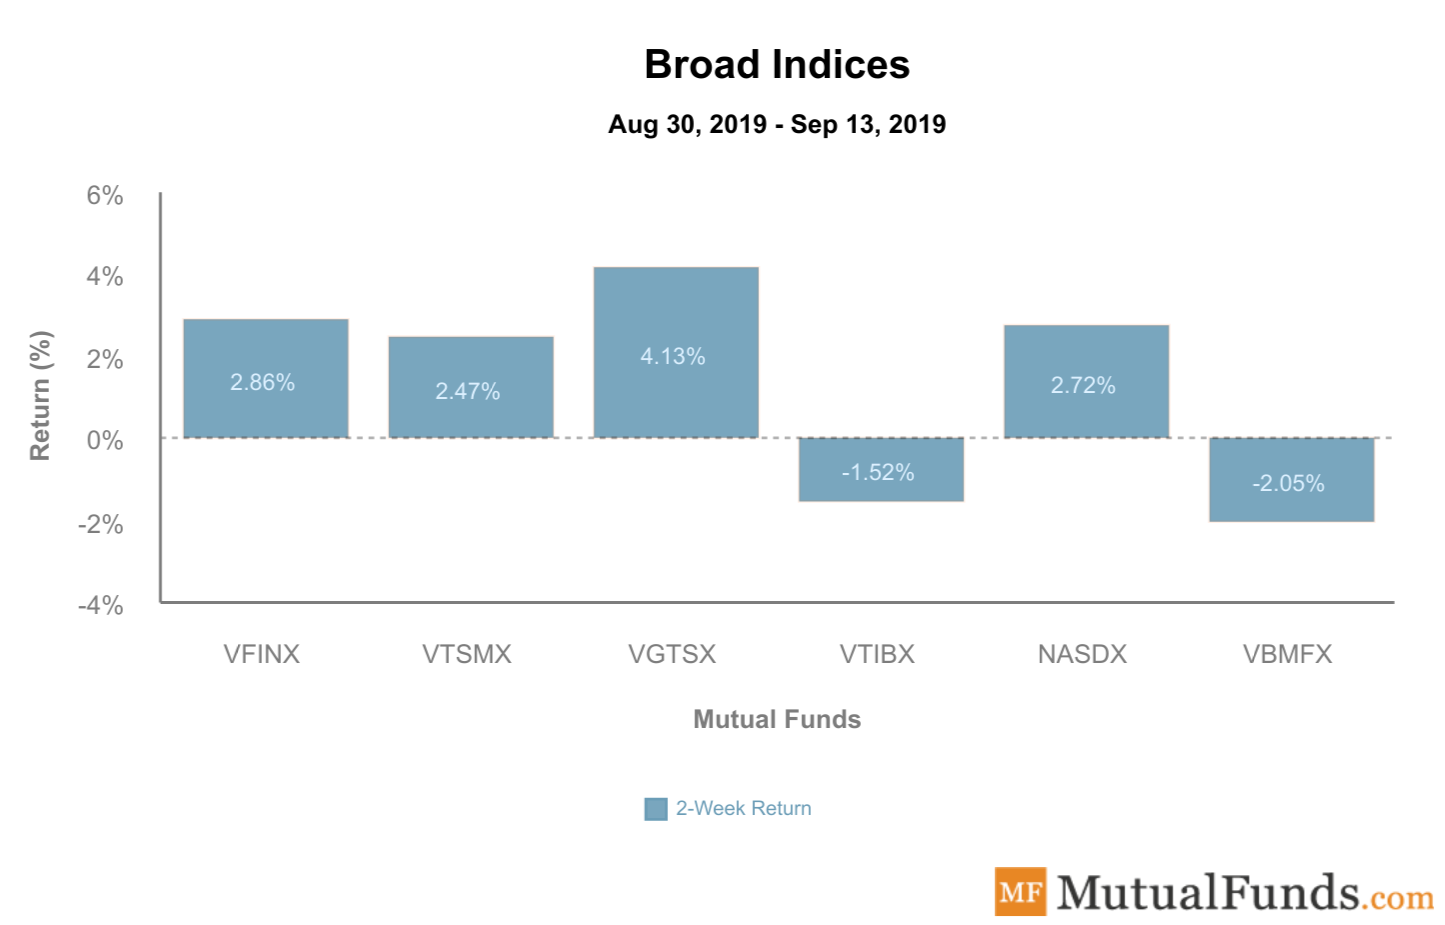 Broad Indices September 13 2019